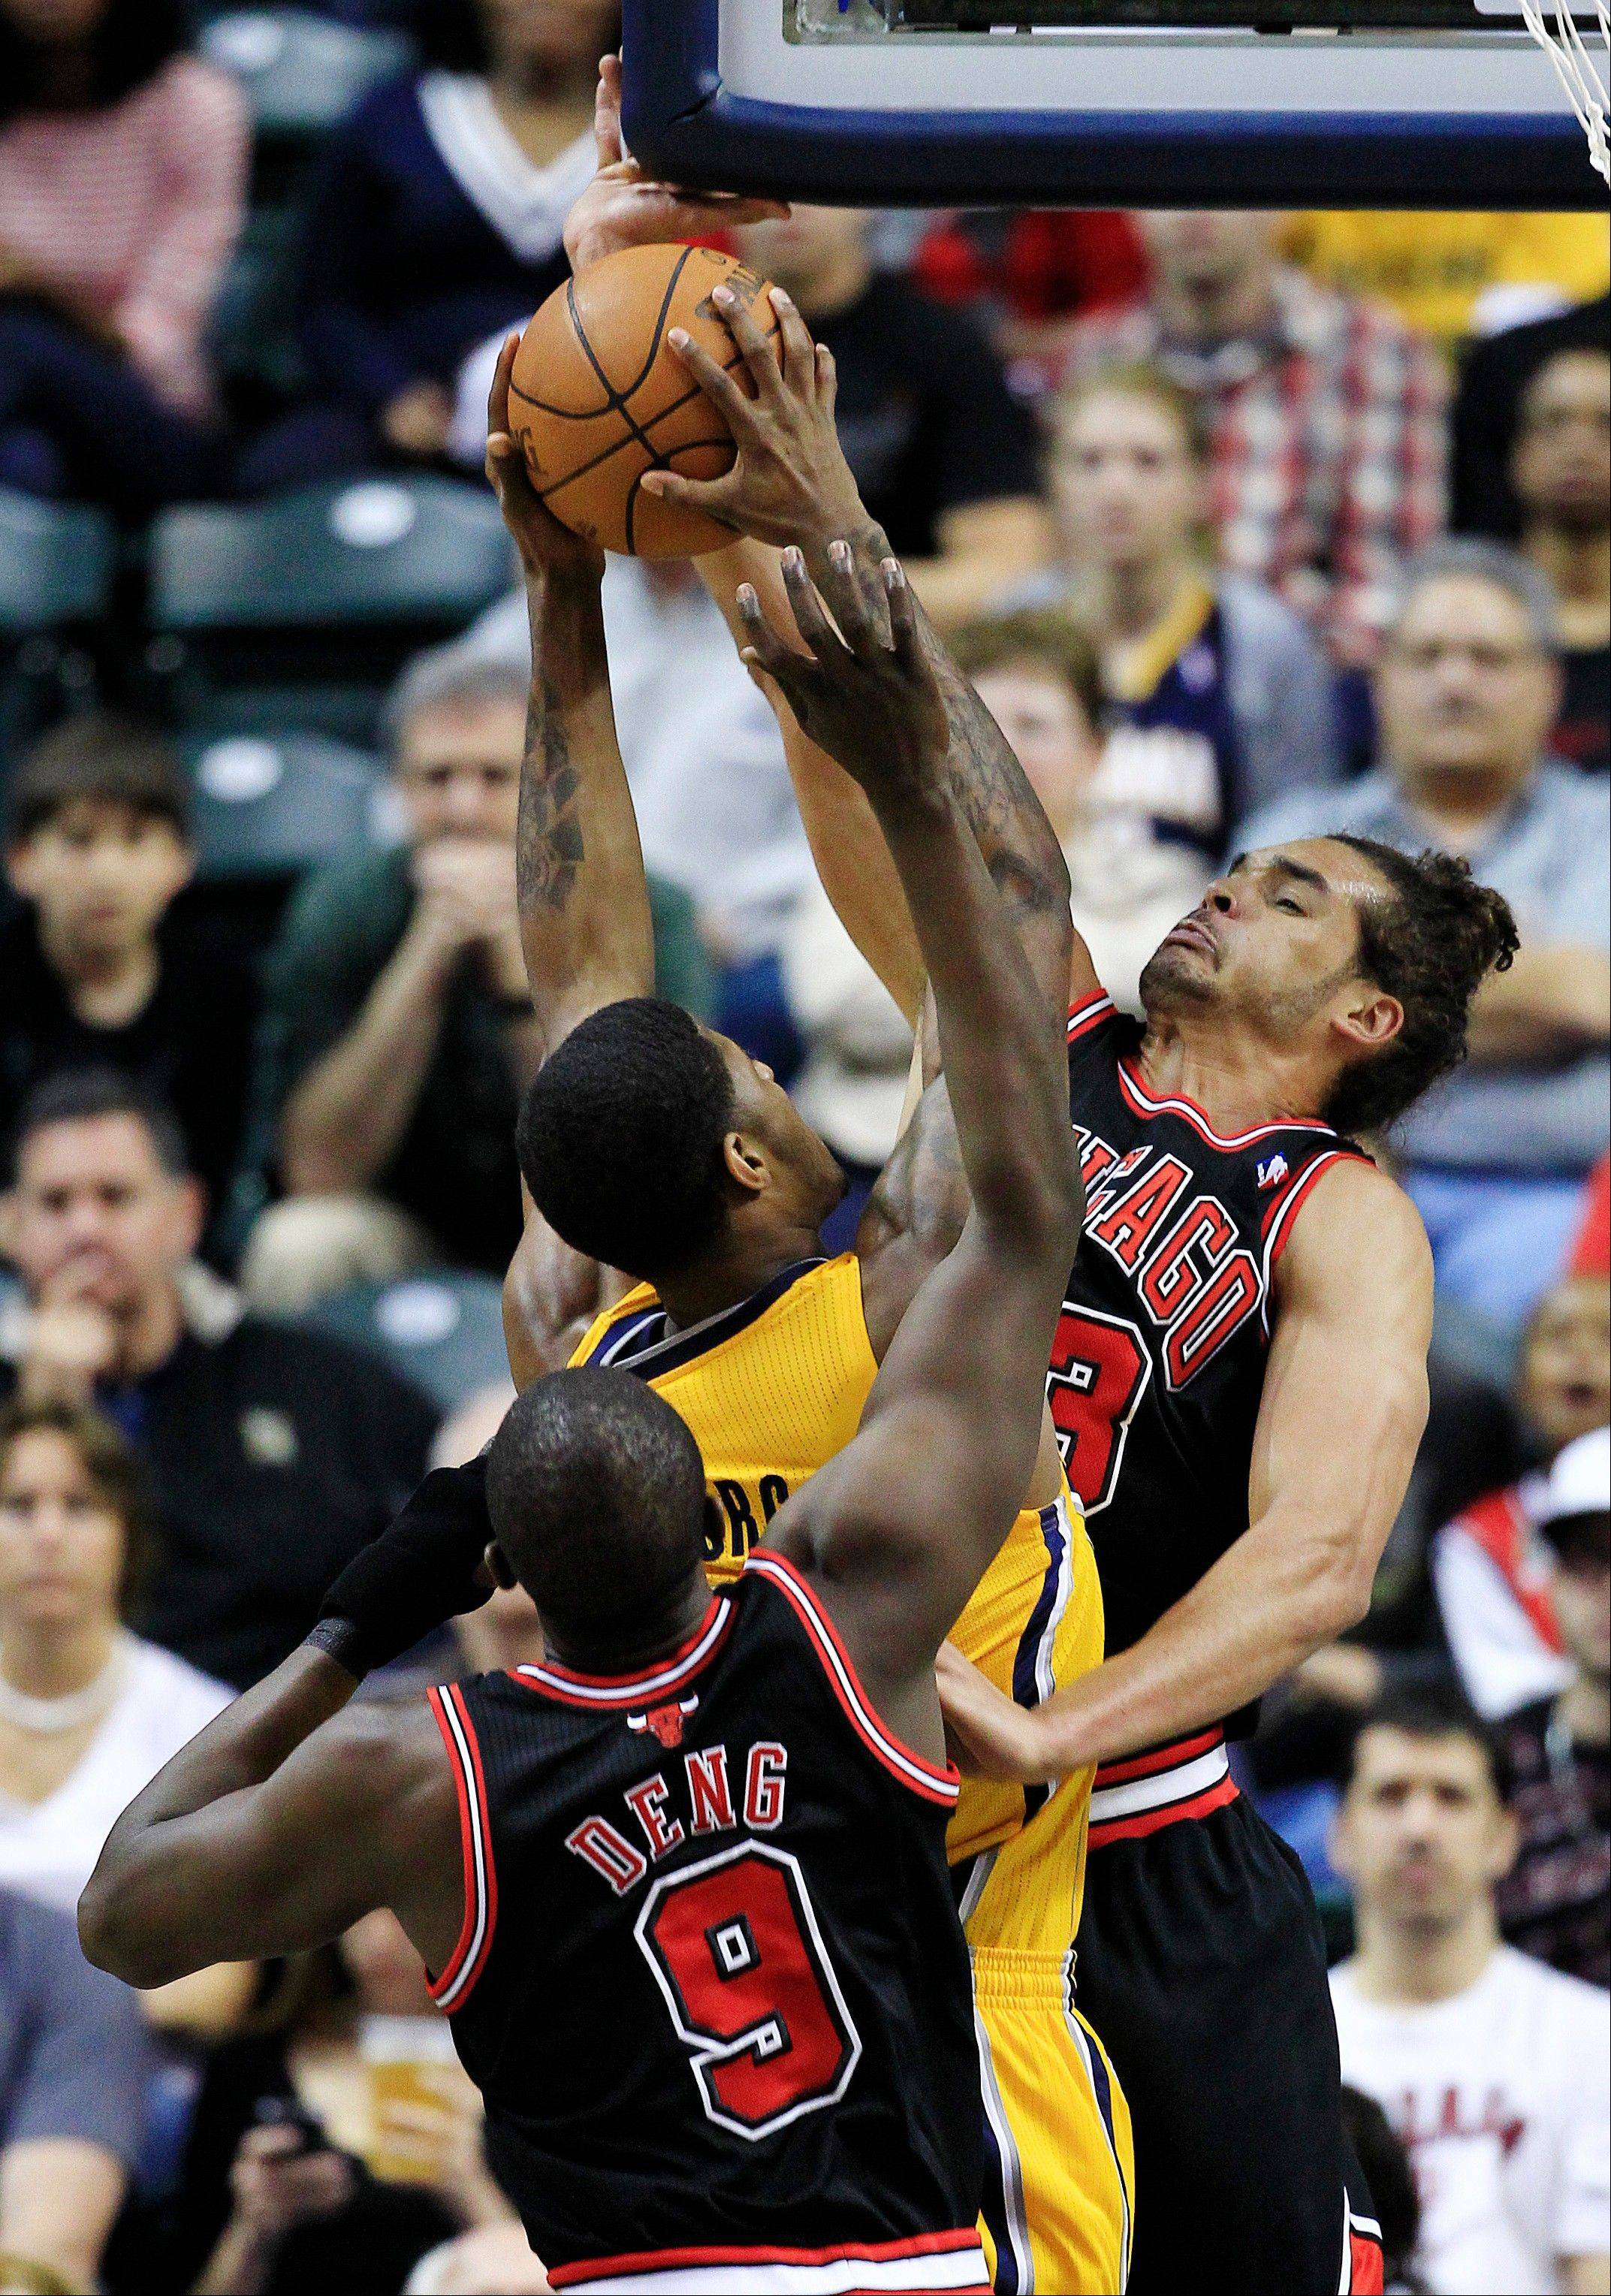 The Bulls' Luol Deng and Joakim Noah play some tight defense on the Pacers' Paul George during the first half Wednesday night.